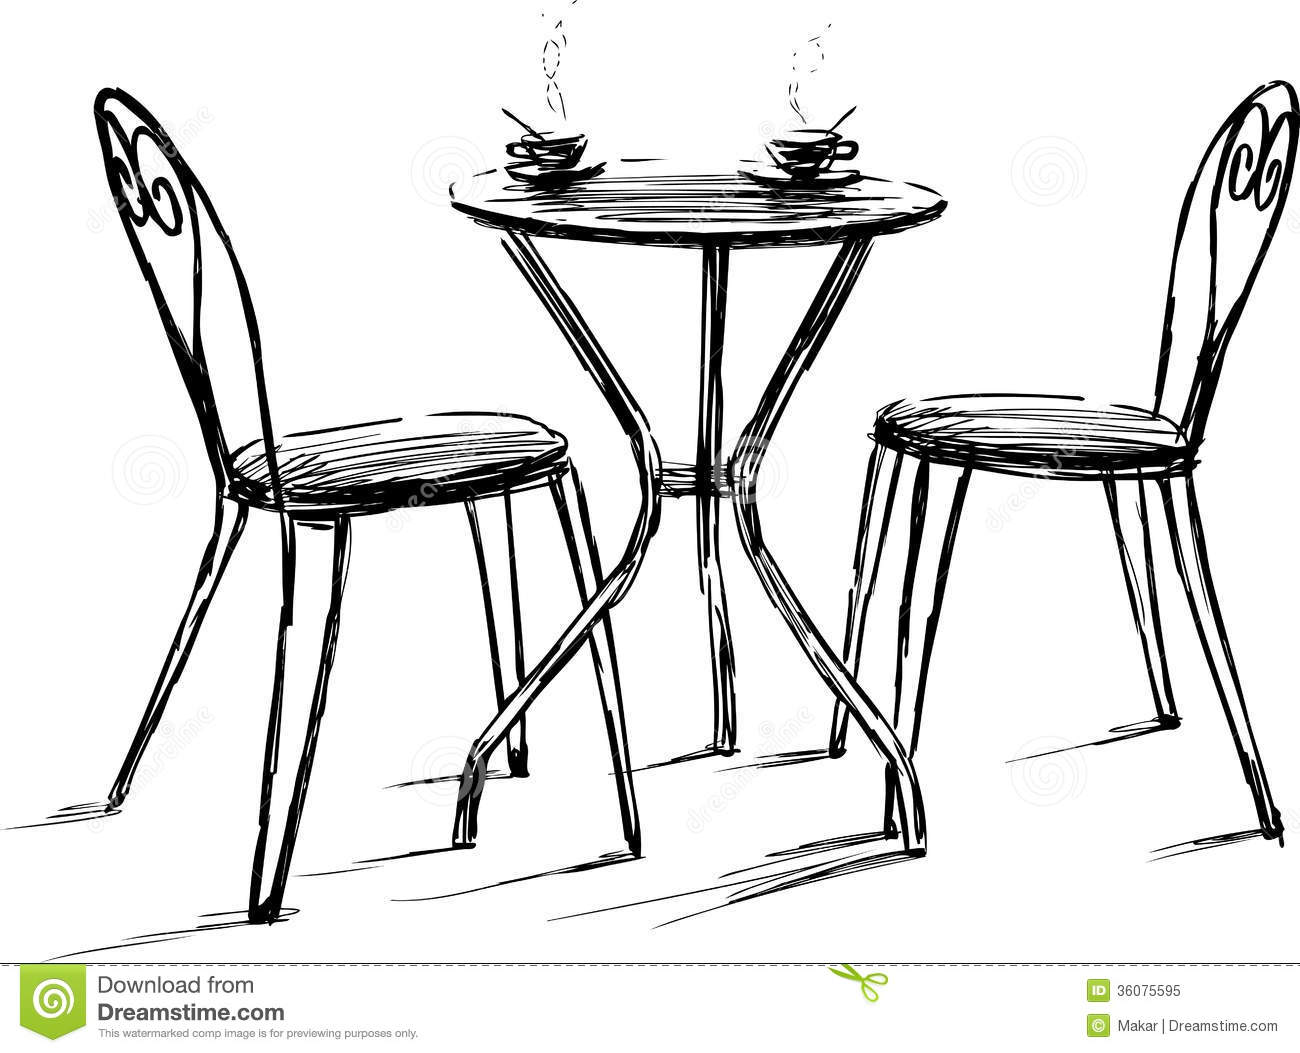 Bistro table clipart banner freeuse library Cafe Table Clipart Clipart Suggest, Cafe Table Clip Art - Brine banner freeuse library